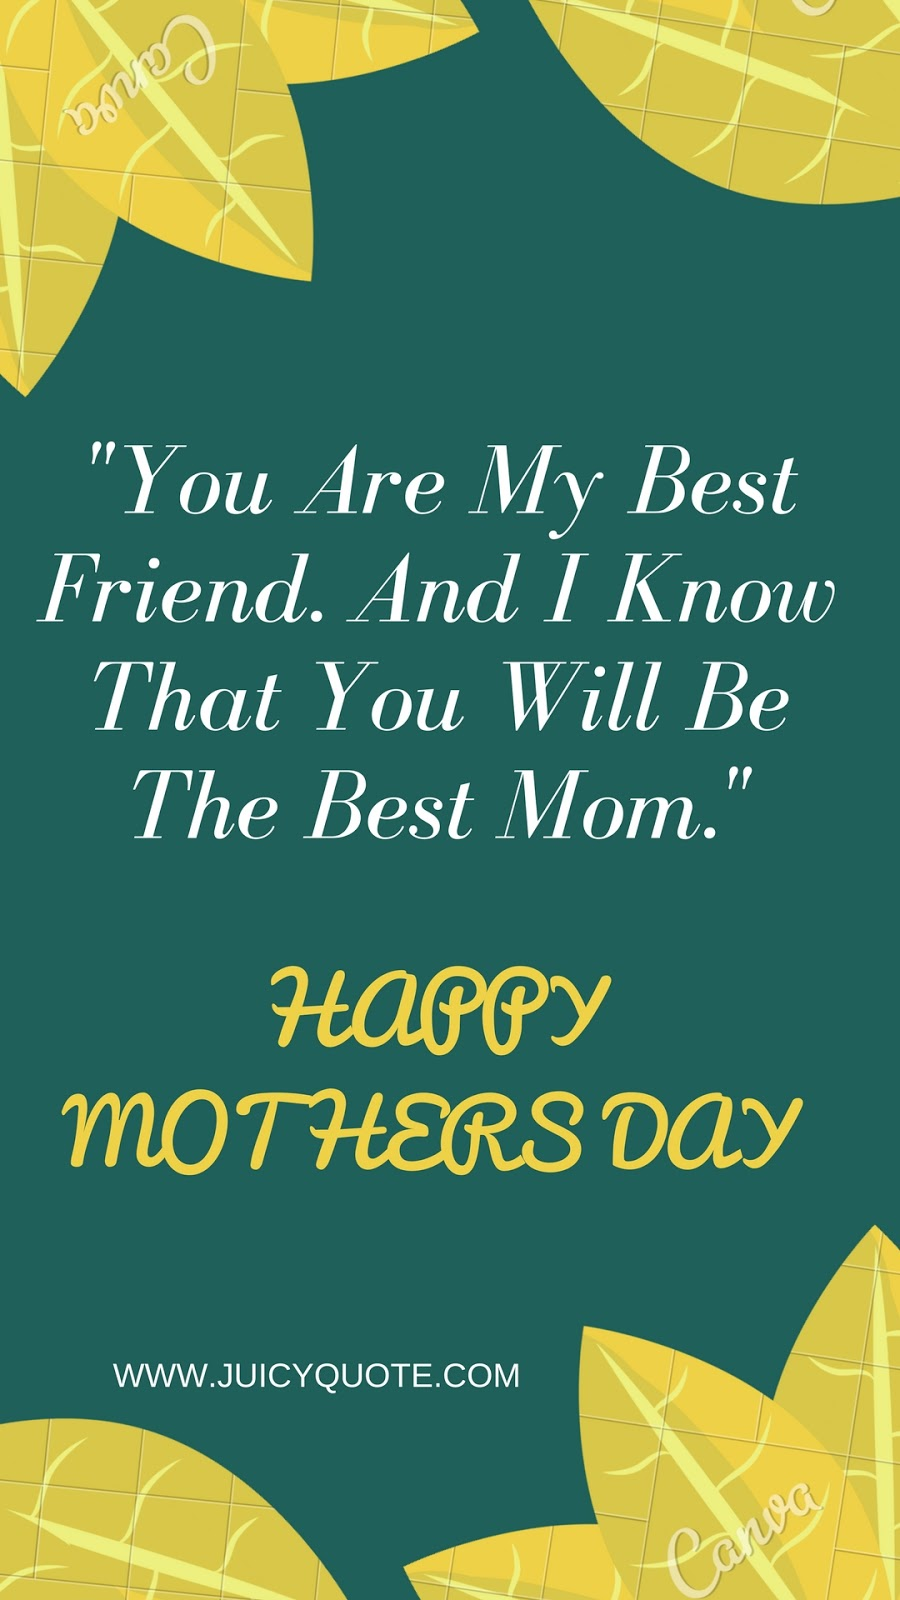 Happy Mothers Day 2018 Wishes Greetings Quotes And Mothers Day